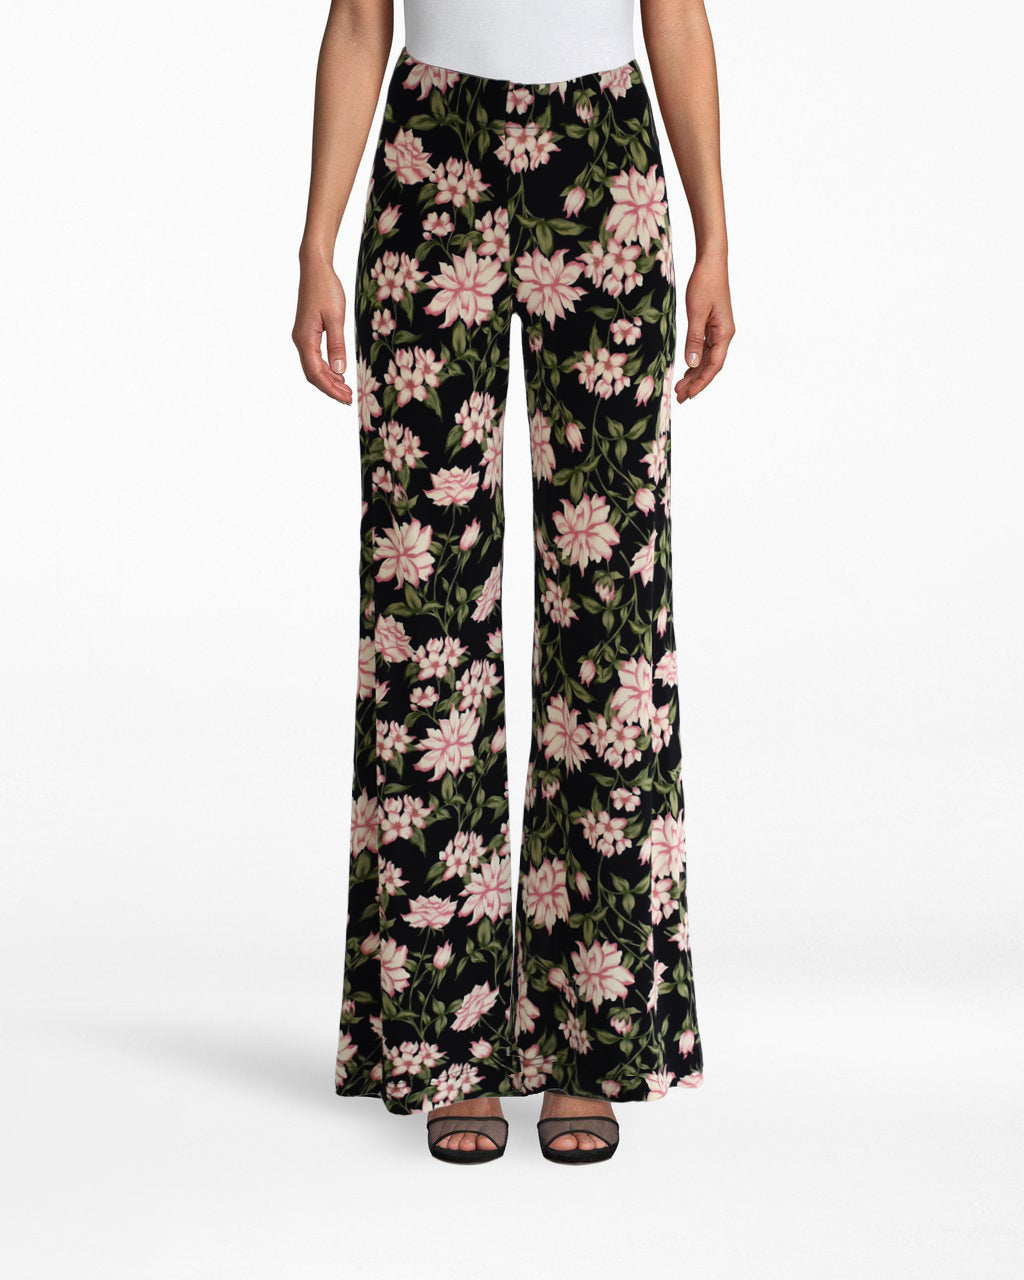 BG10340 - SPRING DREAM WIDELEG PANT - bottoms - pants - YOU PROBABLY HAVE SOME STATEMENT TOPS... SO WHY NOT STATEMENT PANTS? THESE ANKLE SKIMMING WIDELEG PANTS ARE LIGHTWEIGHT AND PERFECT FOR SPRING. PAIR WITH THE SPRING DREAM TURTLENECK TOP FOR A TRULY STANDOUT LOOK.